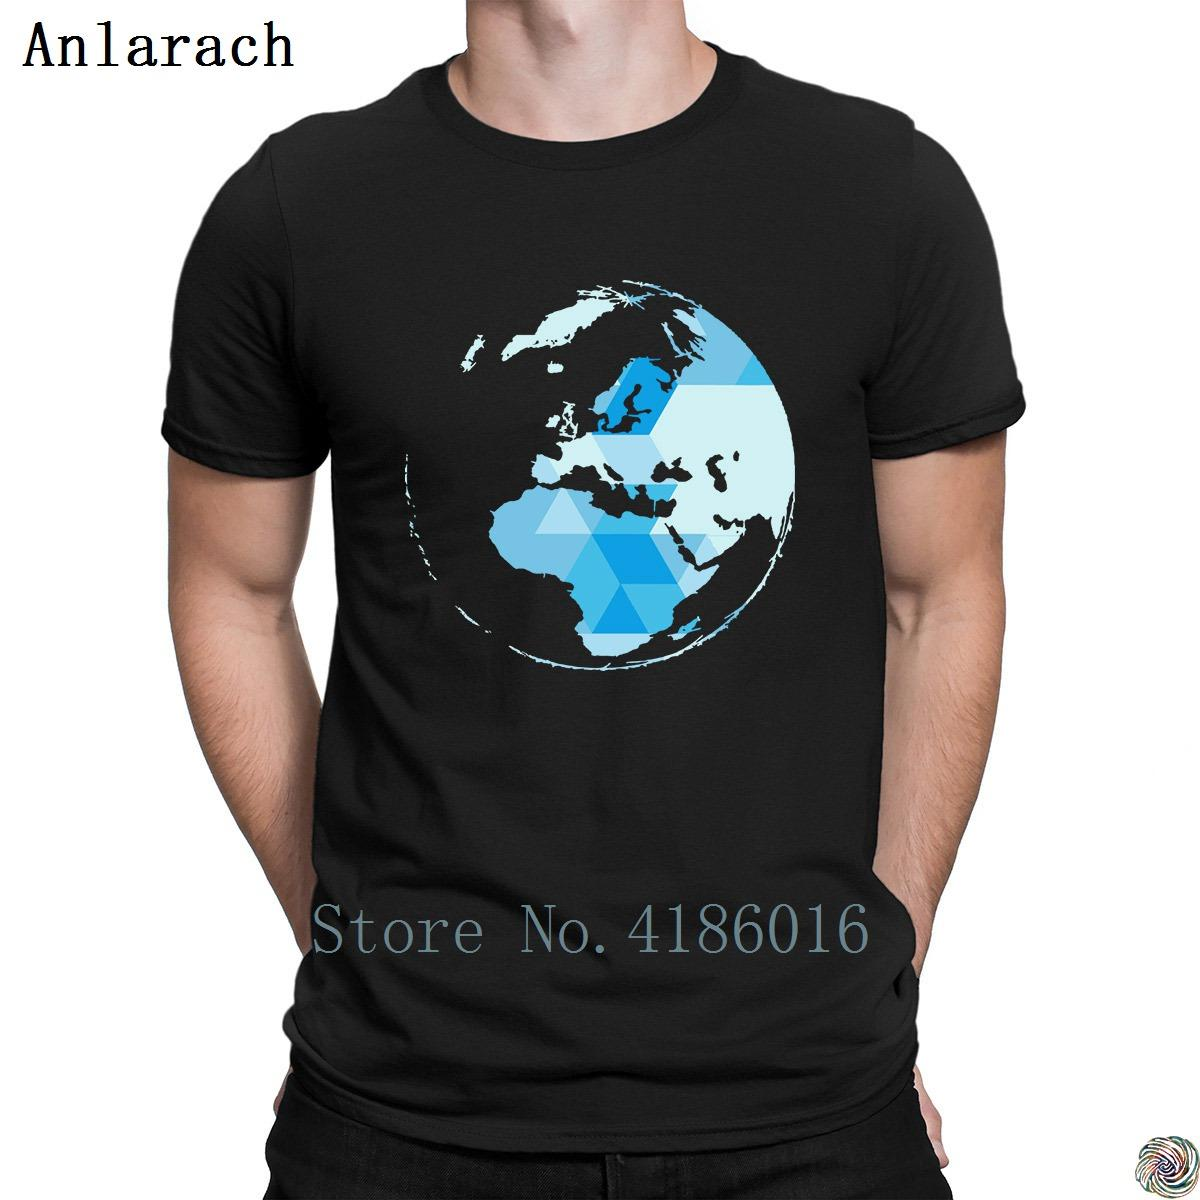 58f053fcd Geometric World Map Blue Triangle T Shirts Tee Top Pattern Summer Style  Latest Men S Tshirt Plus Size Creature Trendy Anlarach Buy T Shirt Design  Buy Tee ...